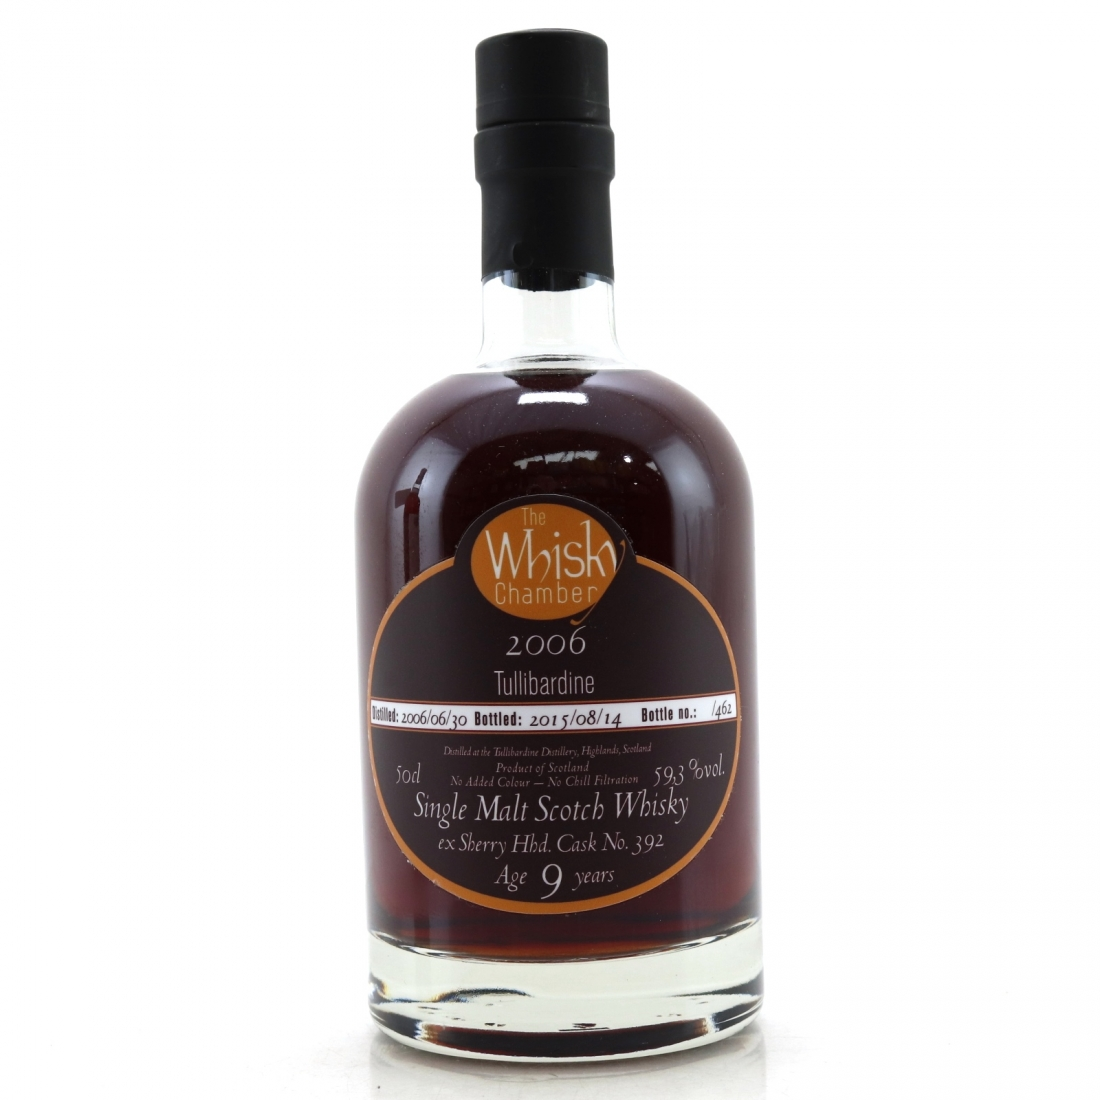 Tullibardine 2006 Whisky Chamber 9 Year Old 50cl